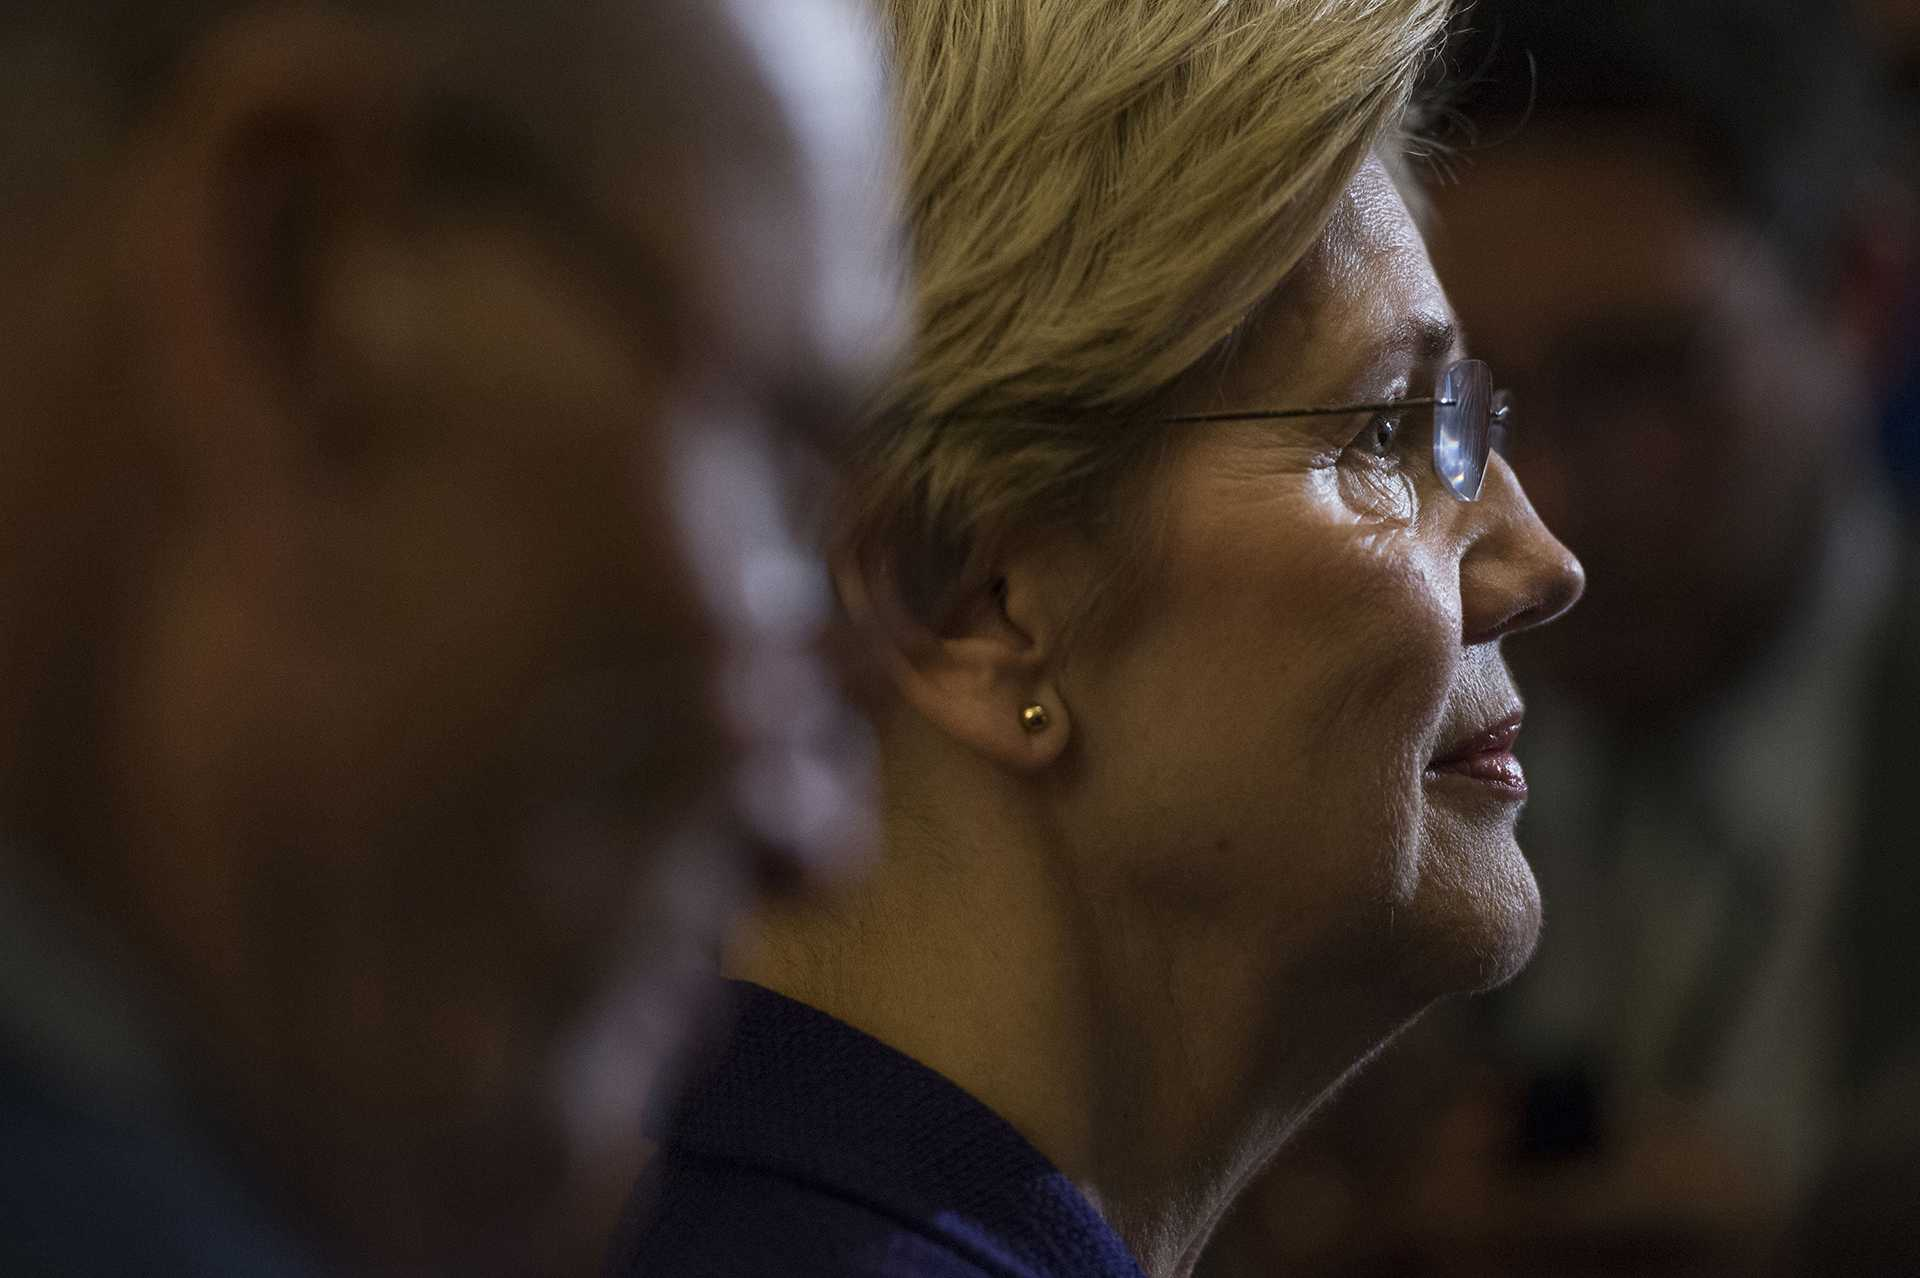 Elizabeth Warren set to make stop in Iowa City Feb. 10